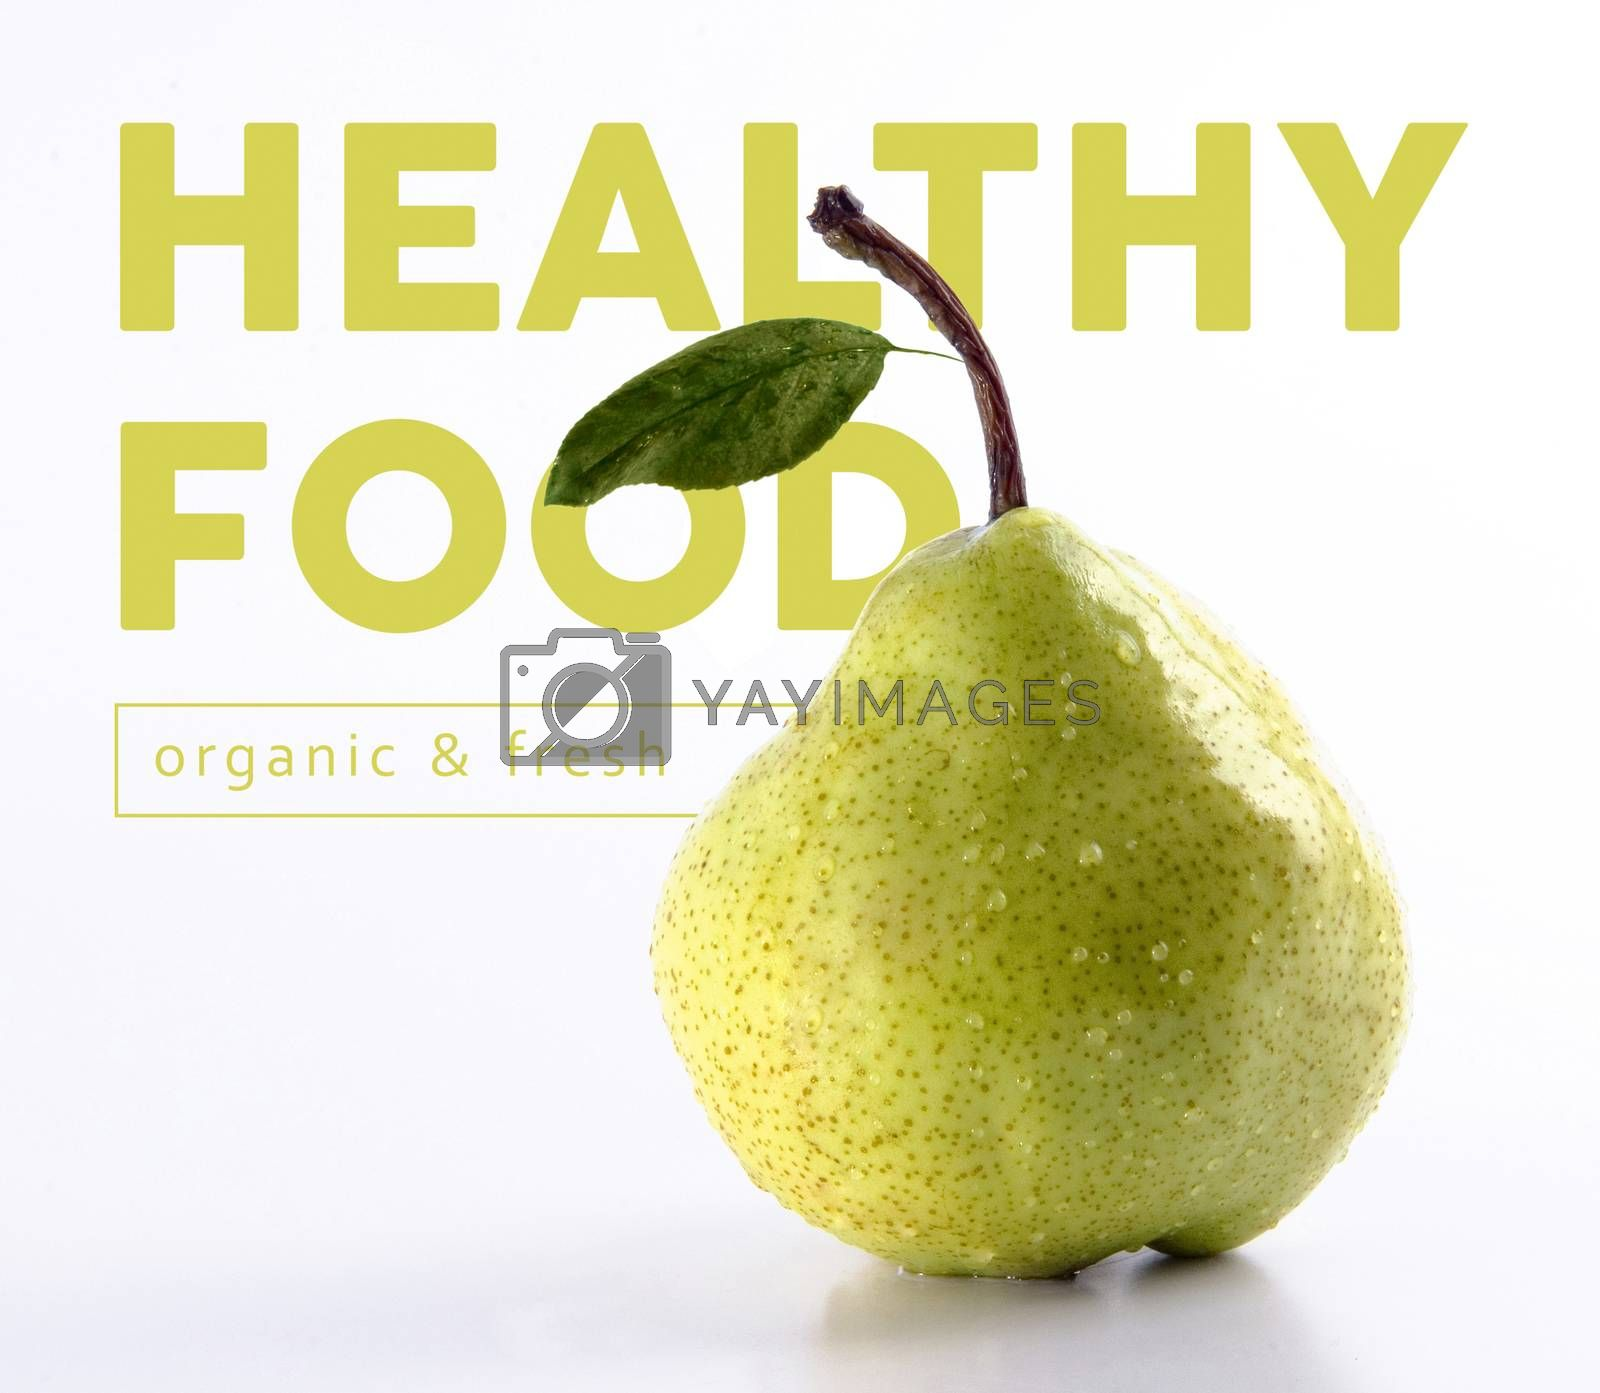 Healthy food fresh and organic concept with green pear fruit isolated background ideal for poster or cover design.